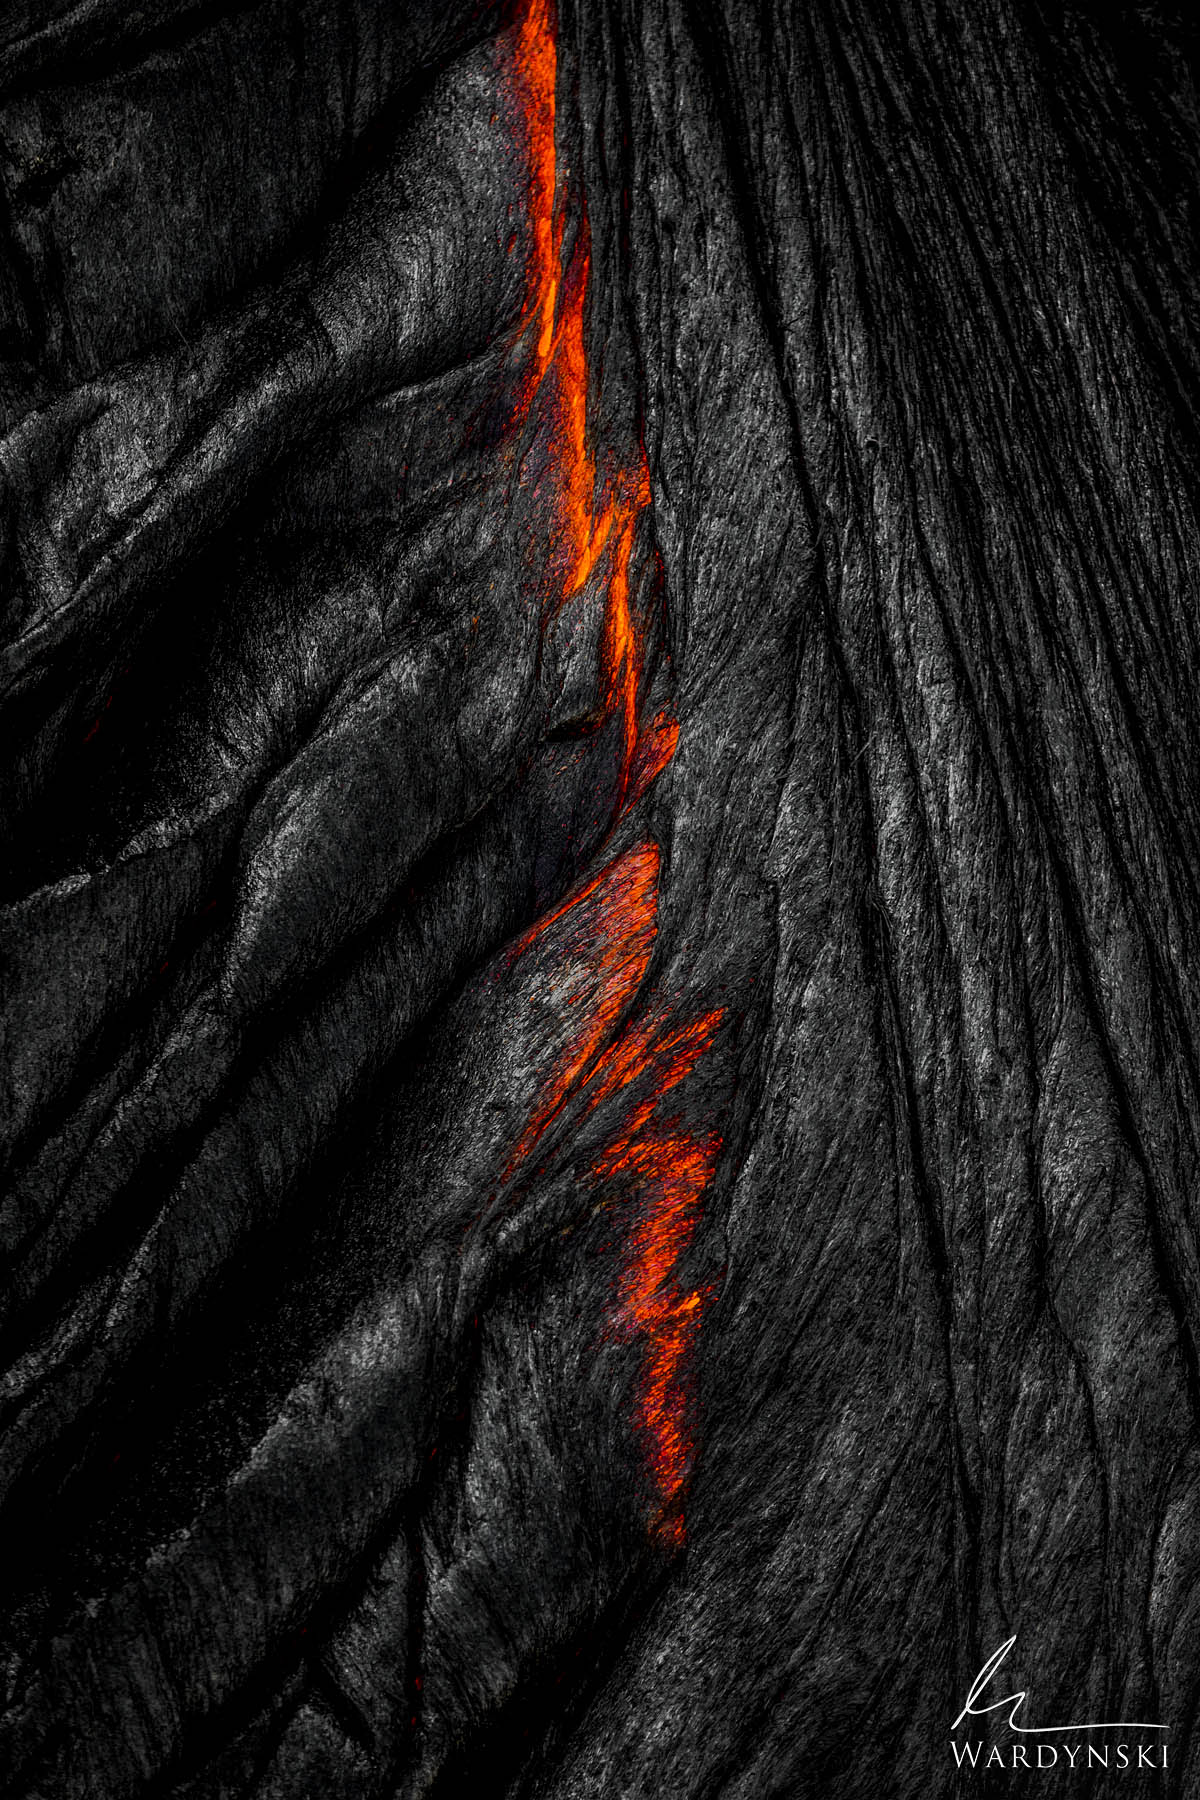 Fine Art Print | Limited Edition of 50  A red rift forms on hardened black lava rock as the molten lava below makes its way to...